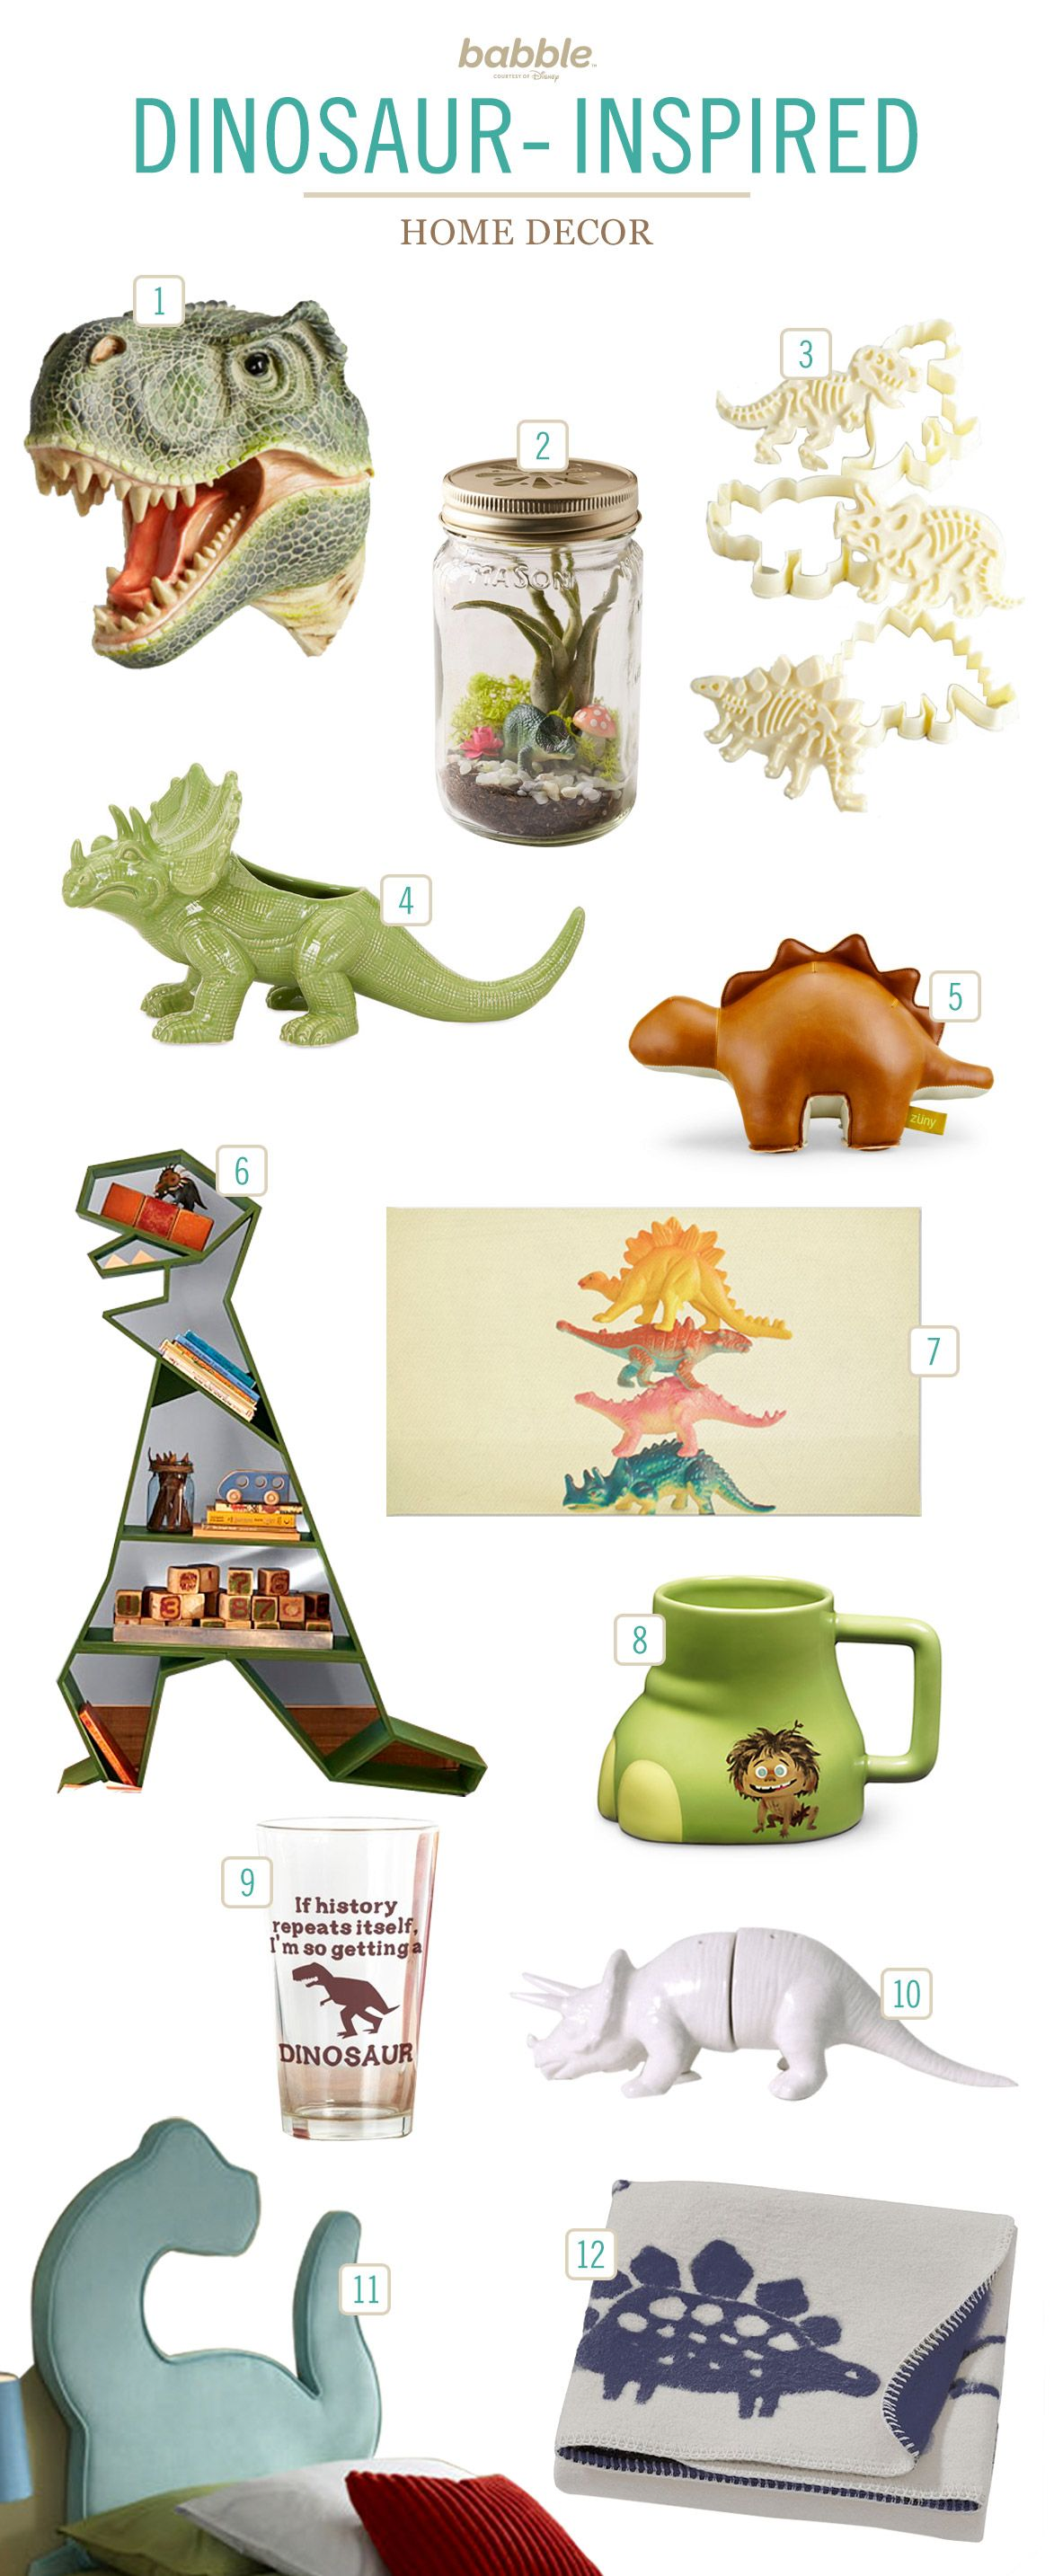 Baby Dinosaur Bedroom Decorations: Dinosaur Home Decor For The Whole Family